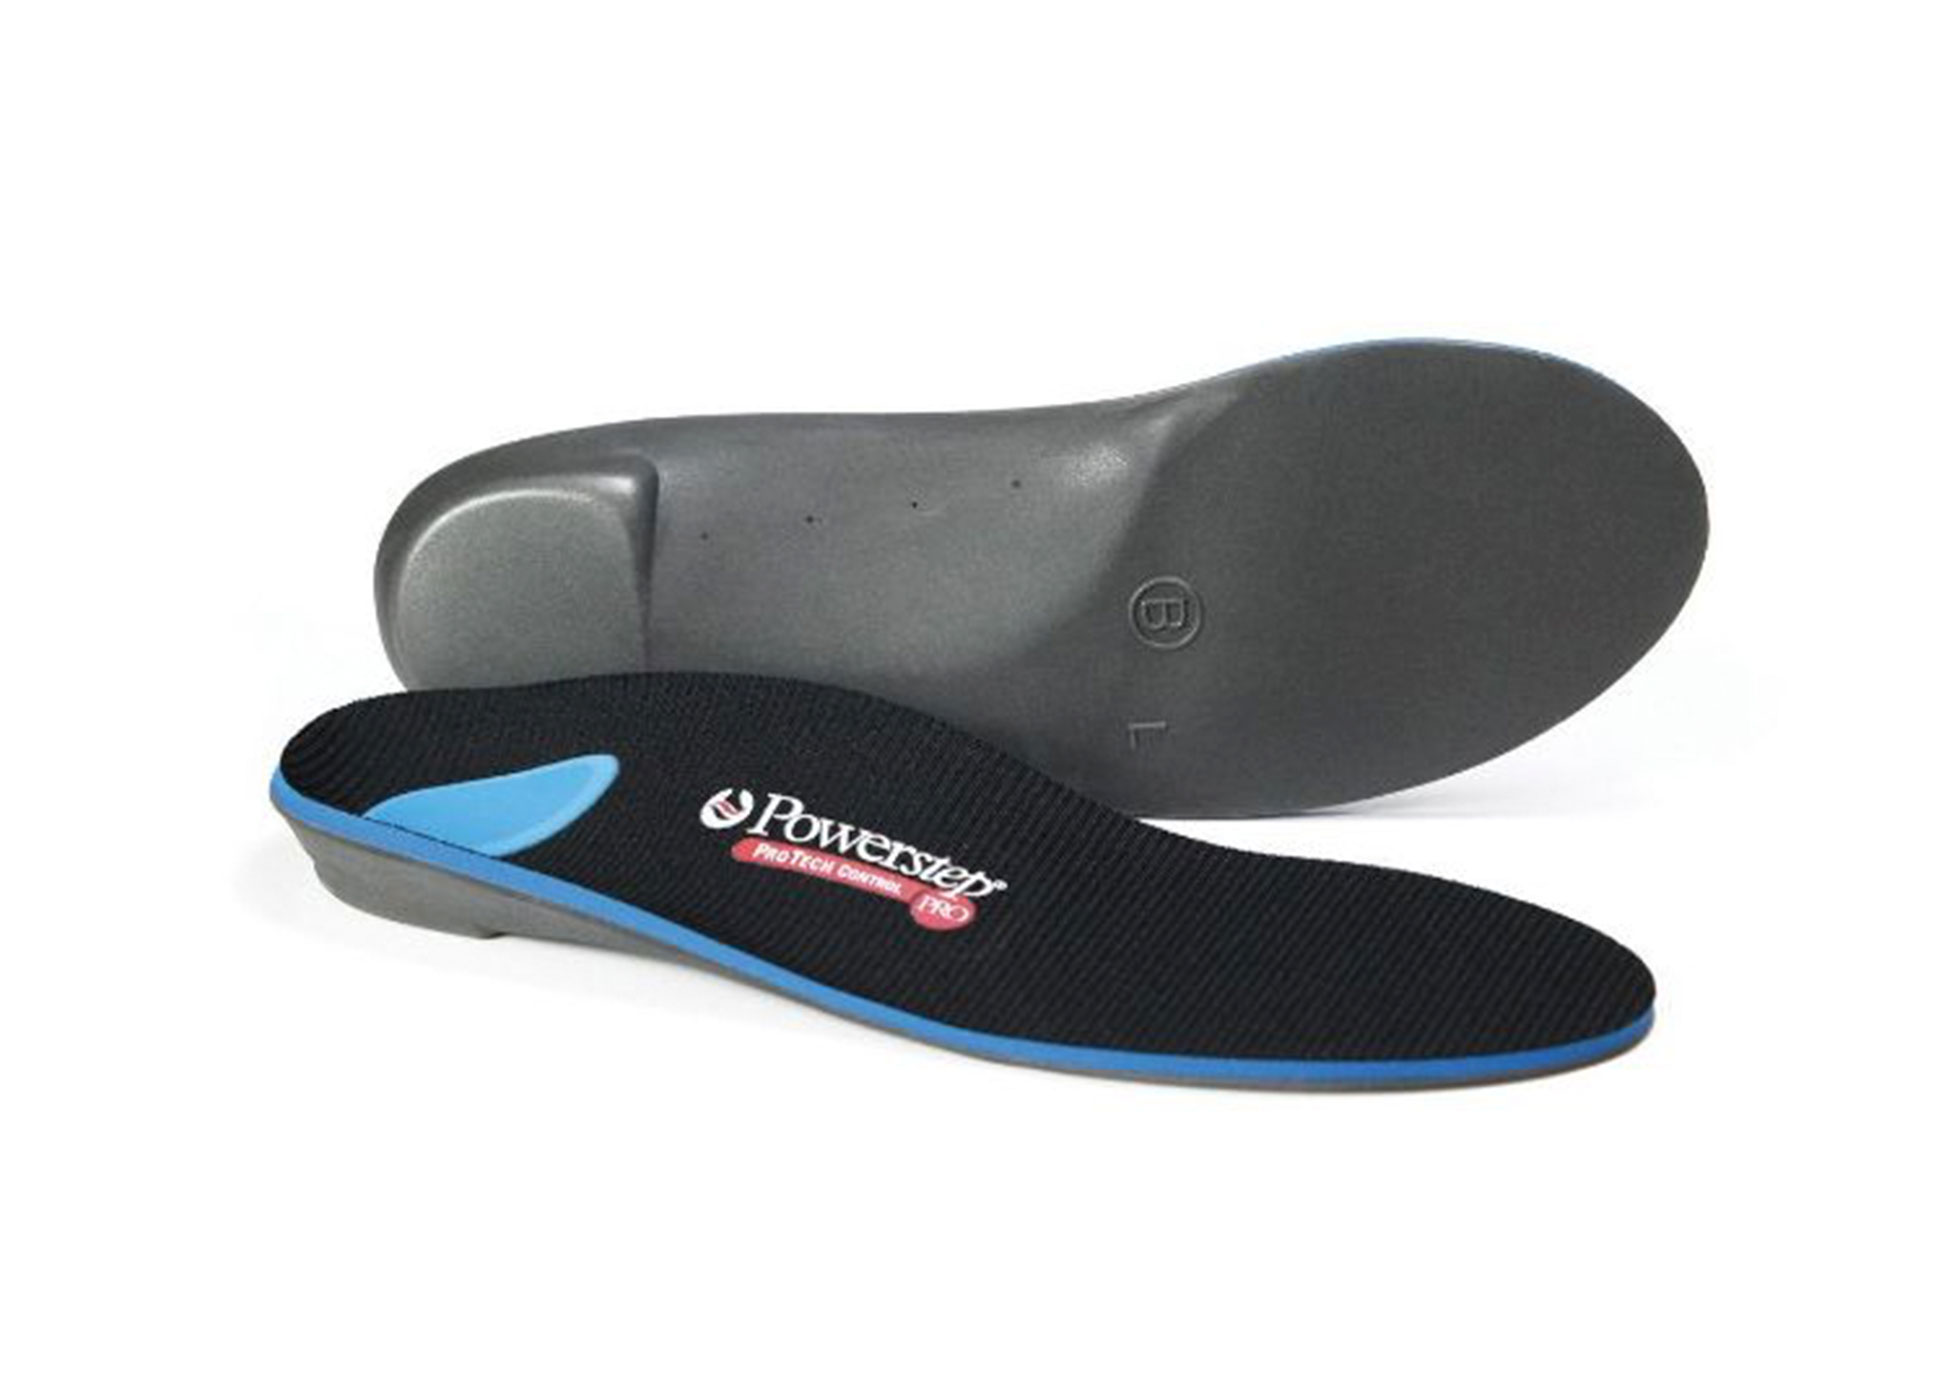 Carnation Footcare - Powerstep Pro - Code A - Mens - 3 - 3.5 / Womens - 4.5 - 5 - Per Pair Insoles